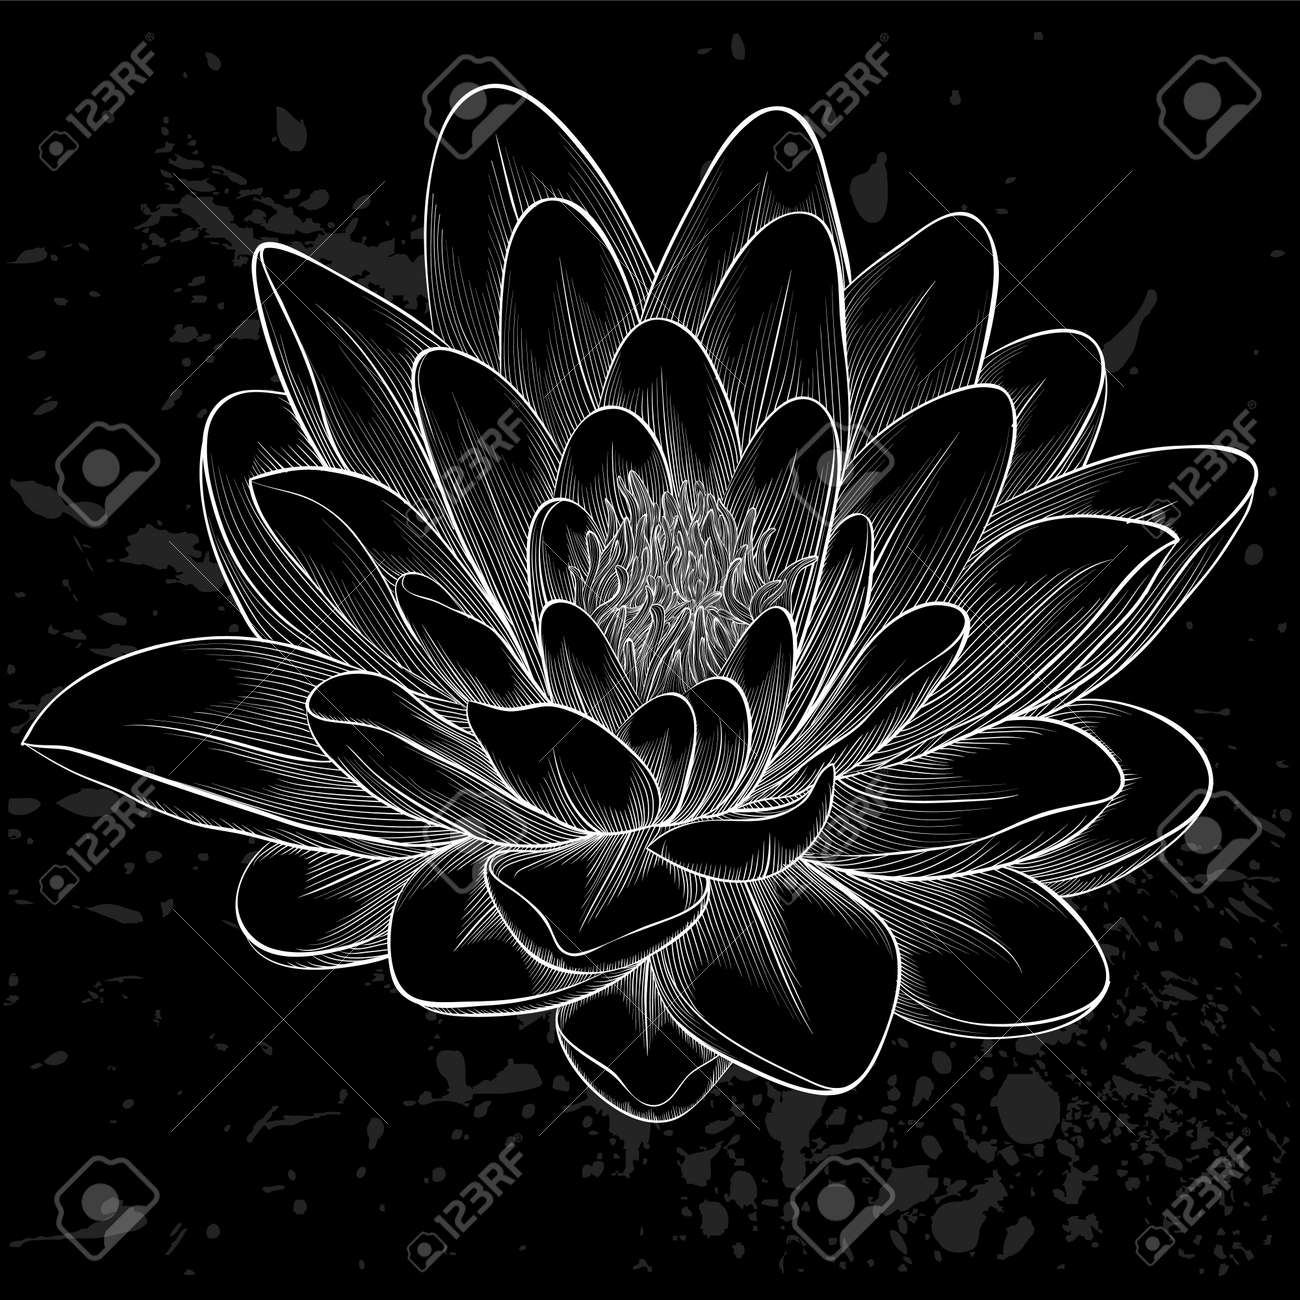 Beautiful Monochrome Black And White Lotus Flower Royalty Free